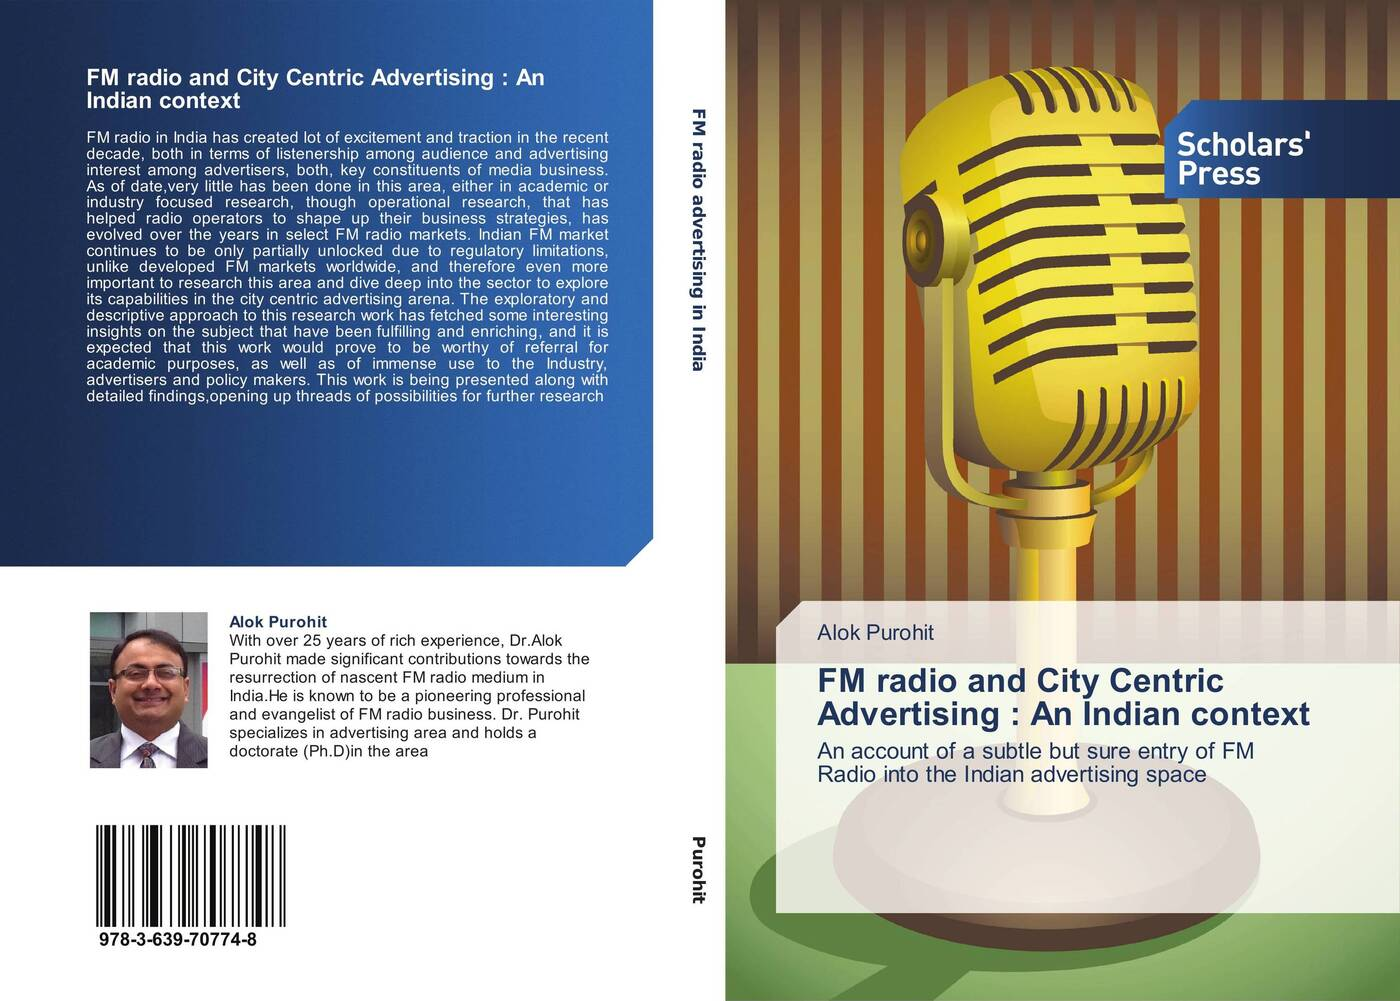 Alok Purohit FM radio and City Centric Advertising : An Indian context fm radio language and its effect on the young listeners